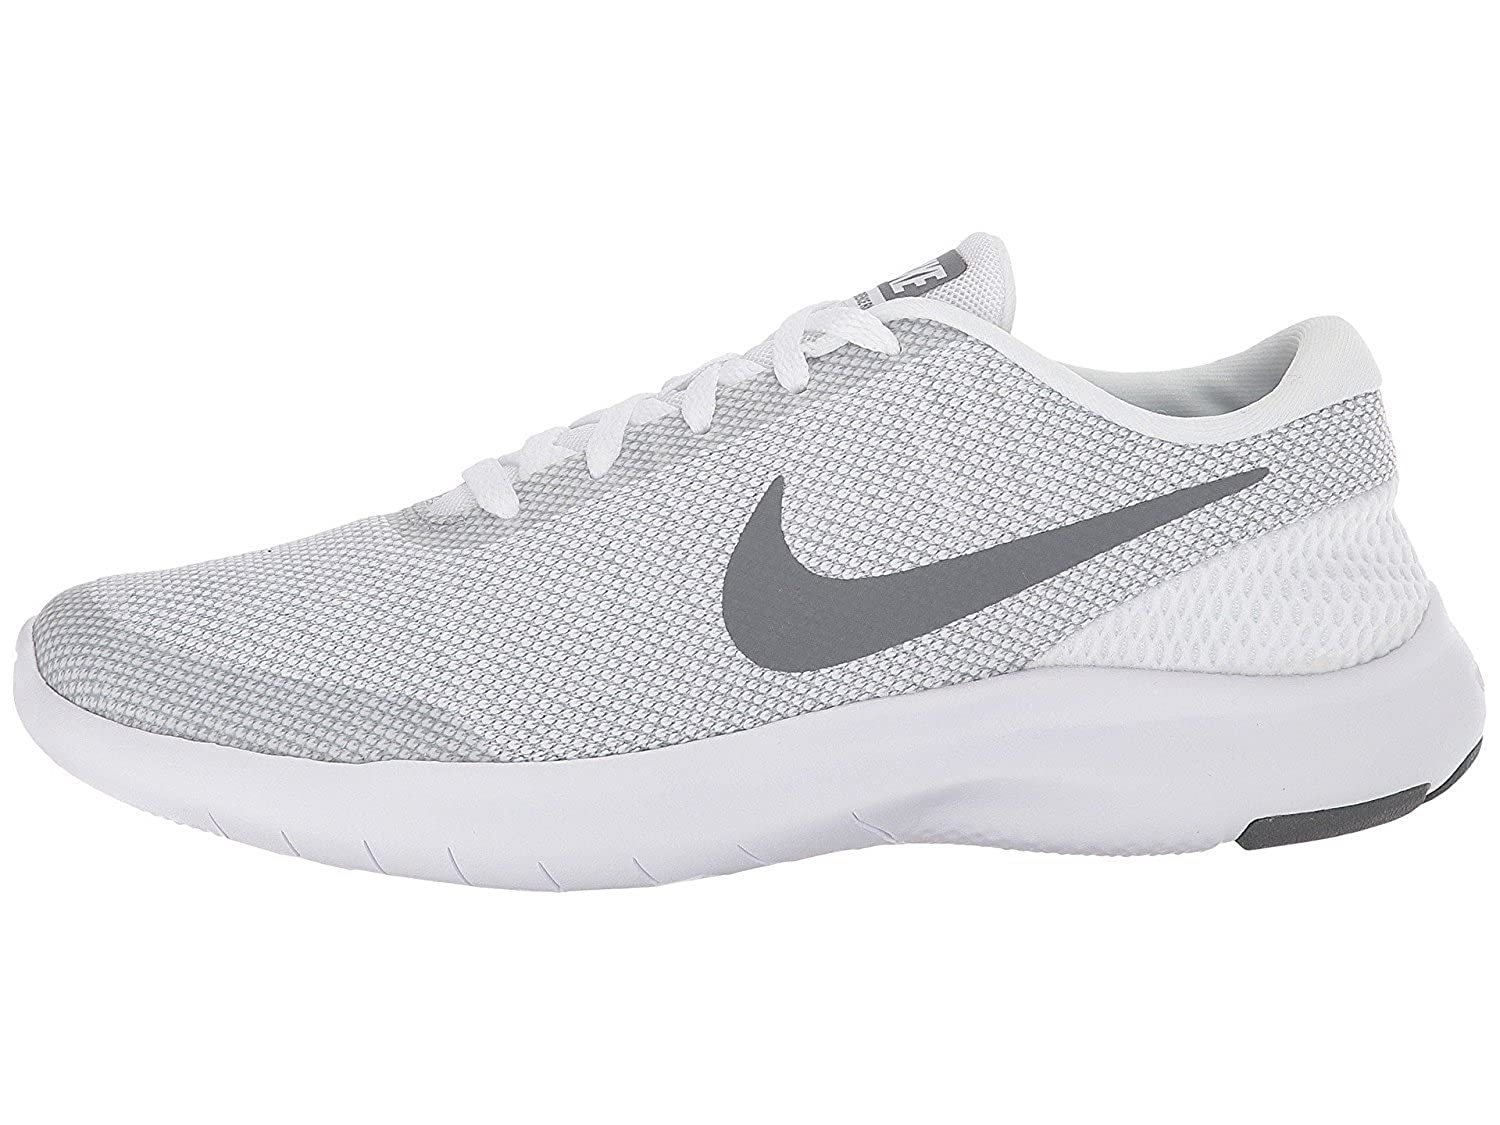 51c2b6071ee7d Nike Womens Flex Experience Rn 6 Low Top Lace Up Running, White, Size 8.5